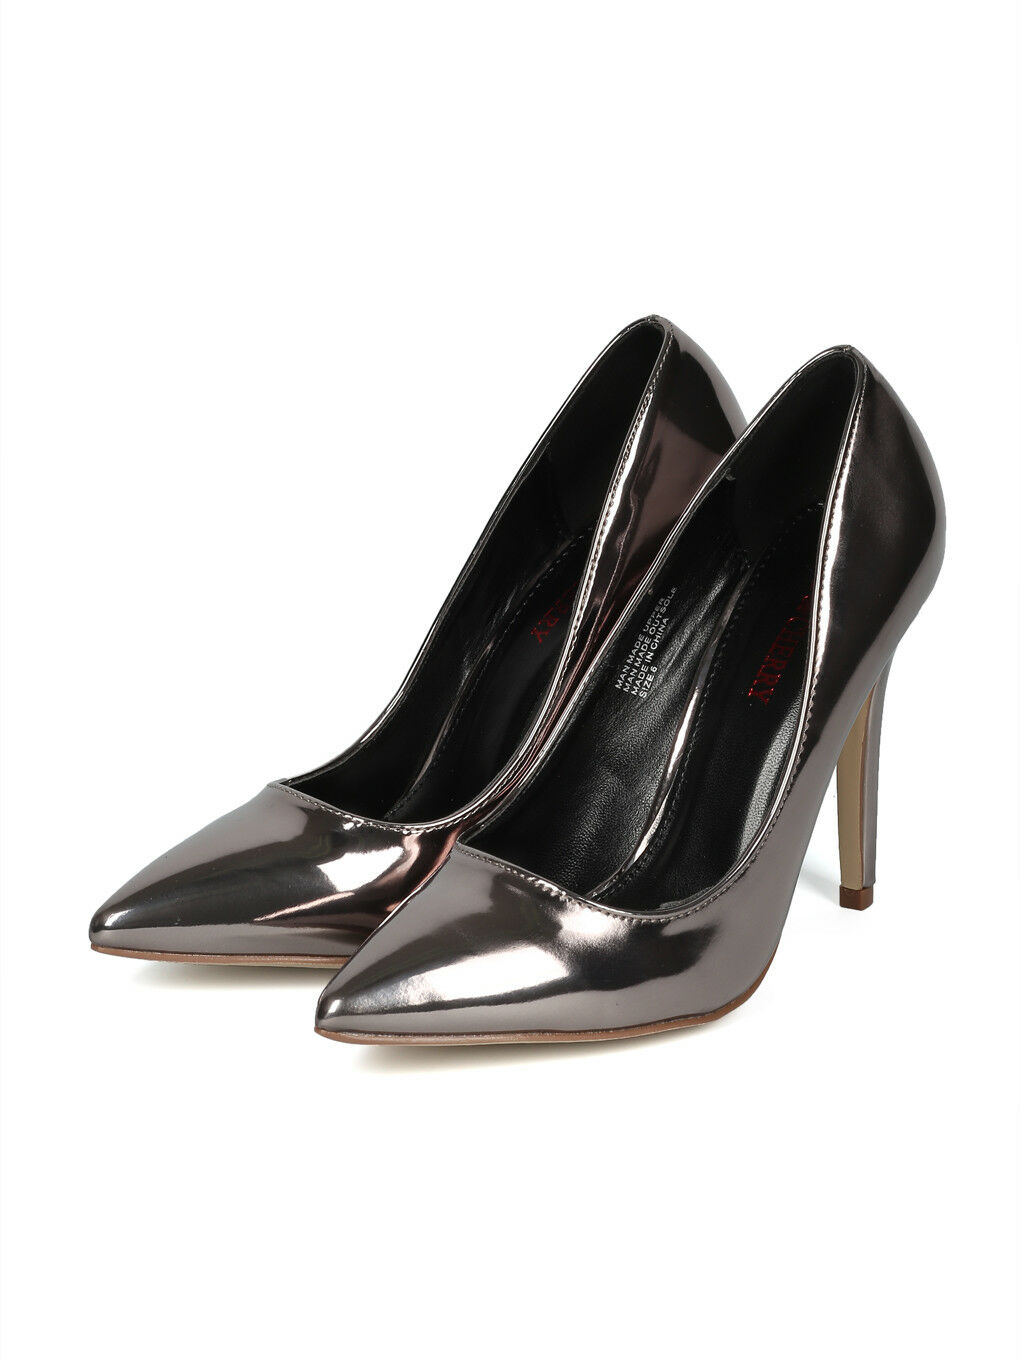 New Women Metallic Leatherette Pointy Toe Stiletto Pump - 17917 By Red Cherry